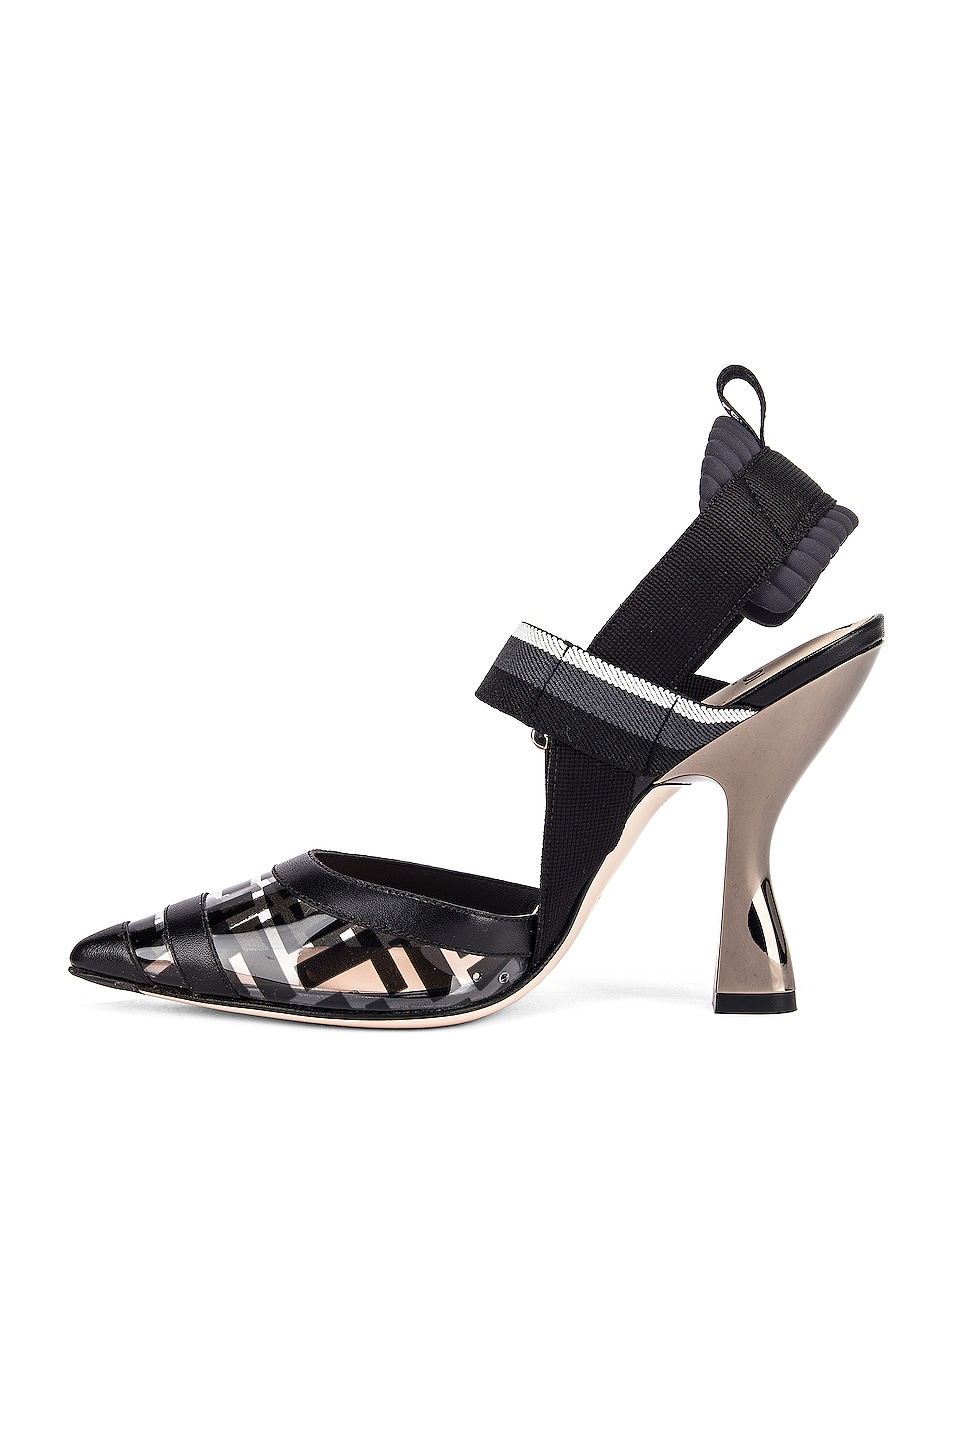 Image 5 of Fendi Logo Slingback Heels in Black